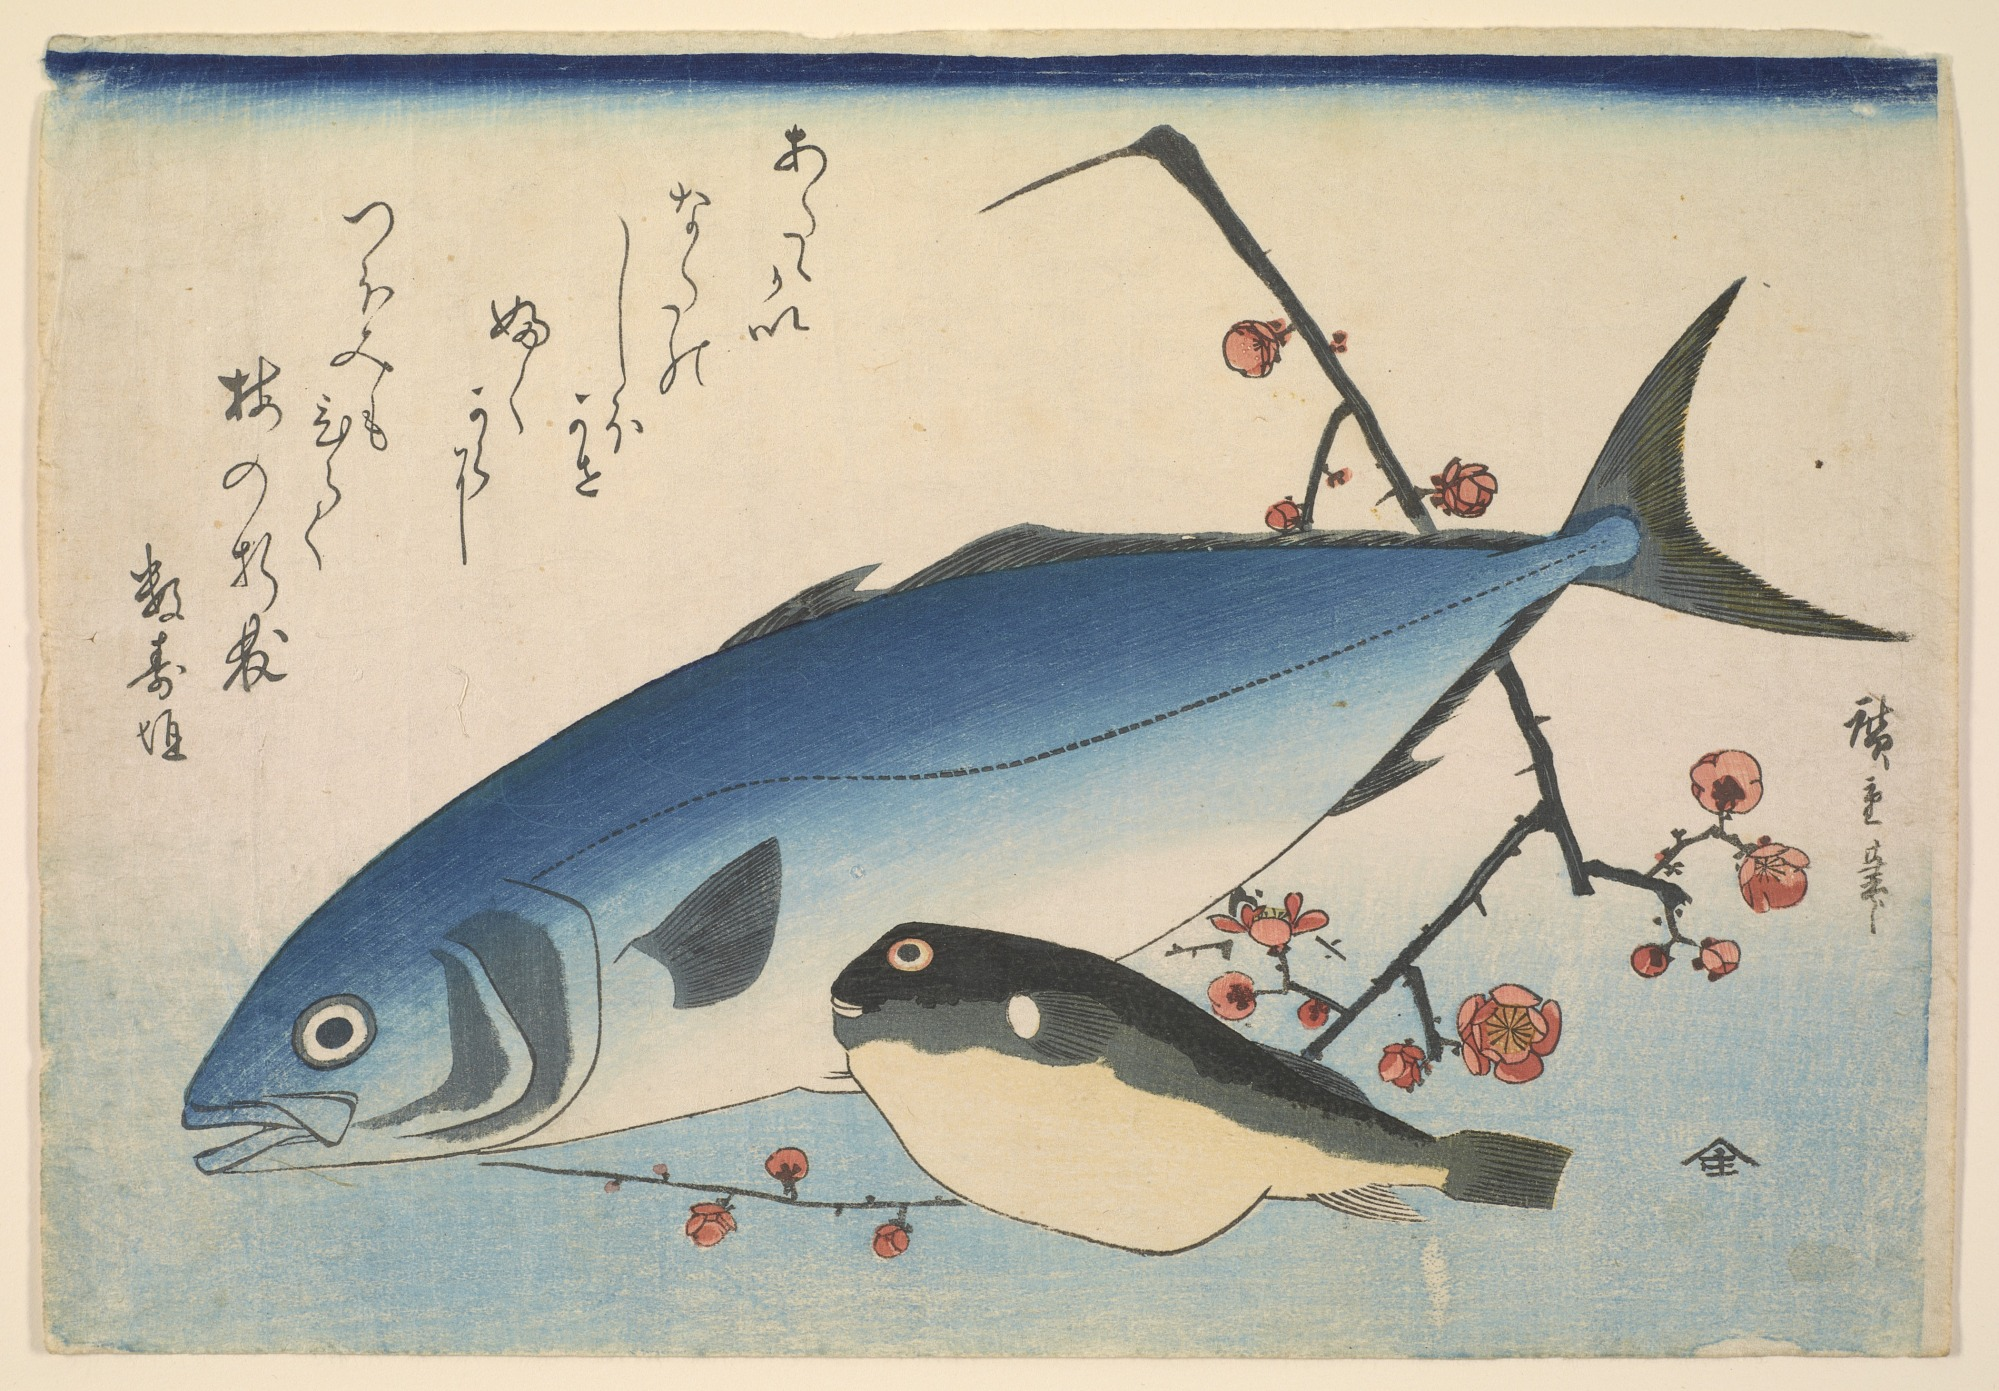 Yellowtail (Inada) and Blowfish (Fugu) with Plum Blossoms, with inscription